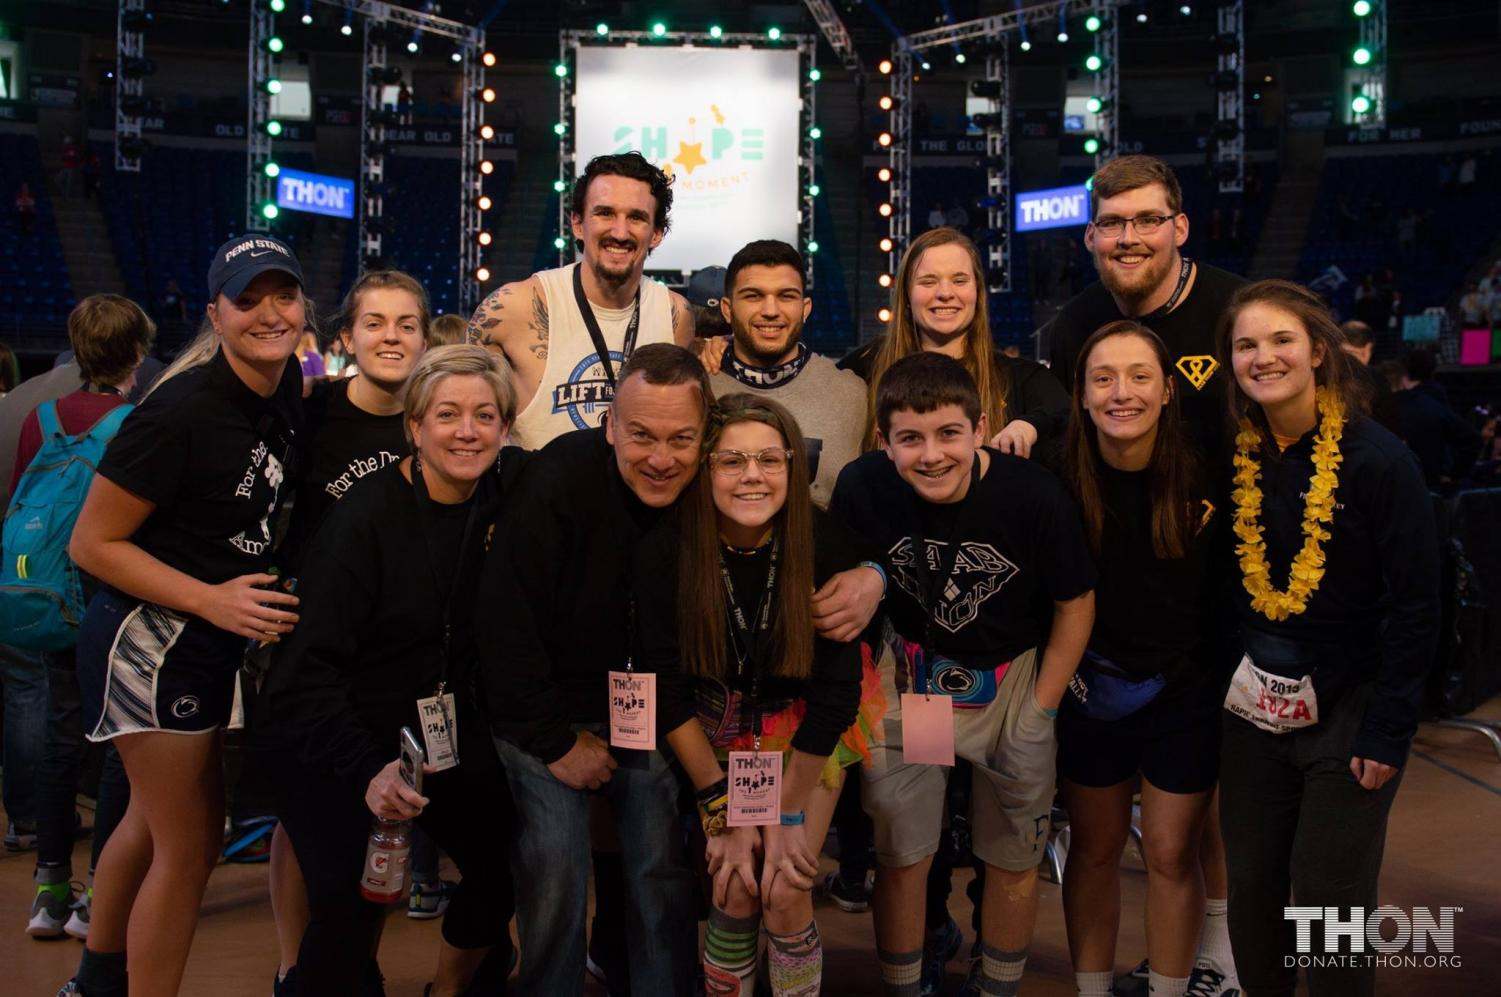 Senior, Isabella Messina and her family at THON 2019. Isabella is a two time cancer survivor and has been a Four Diamonds child since 2003.